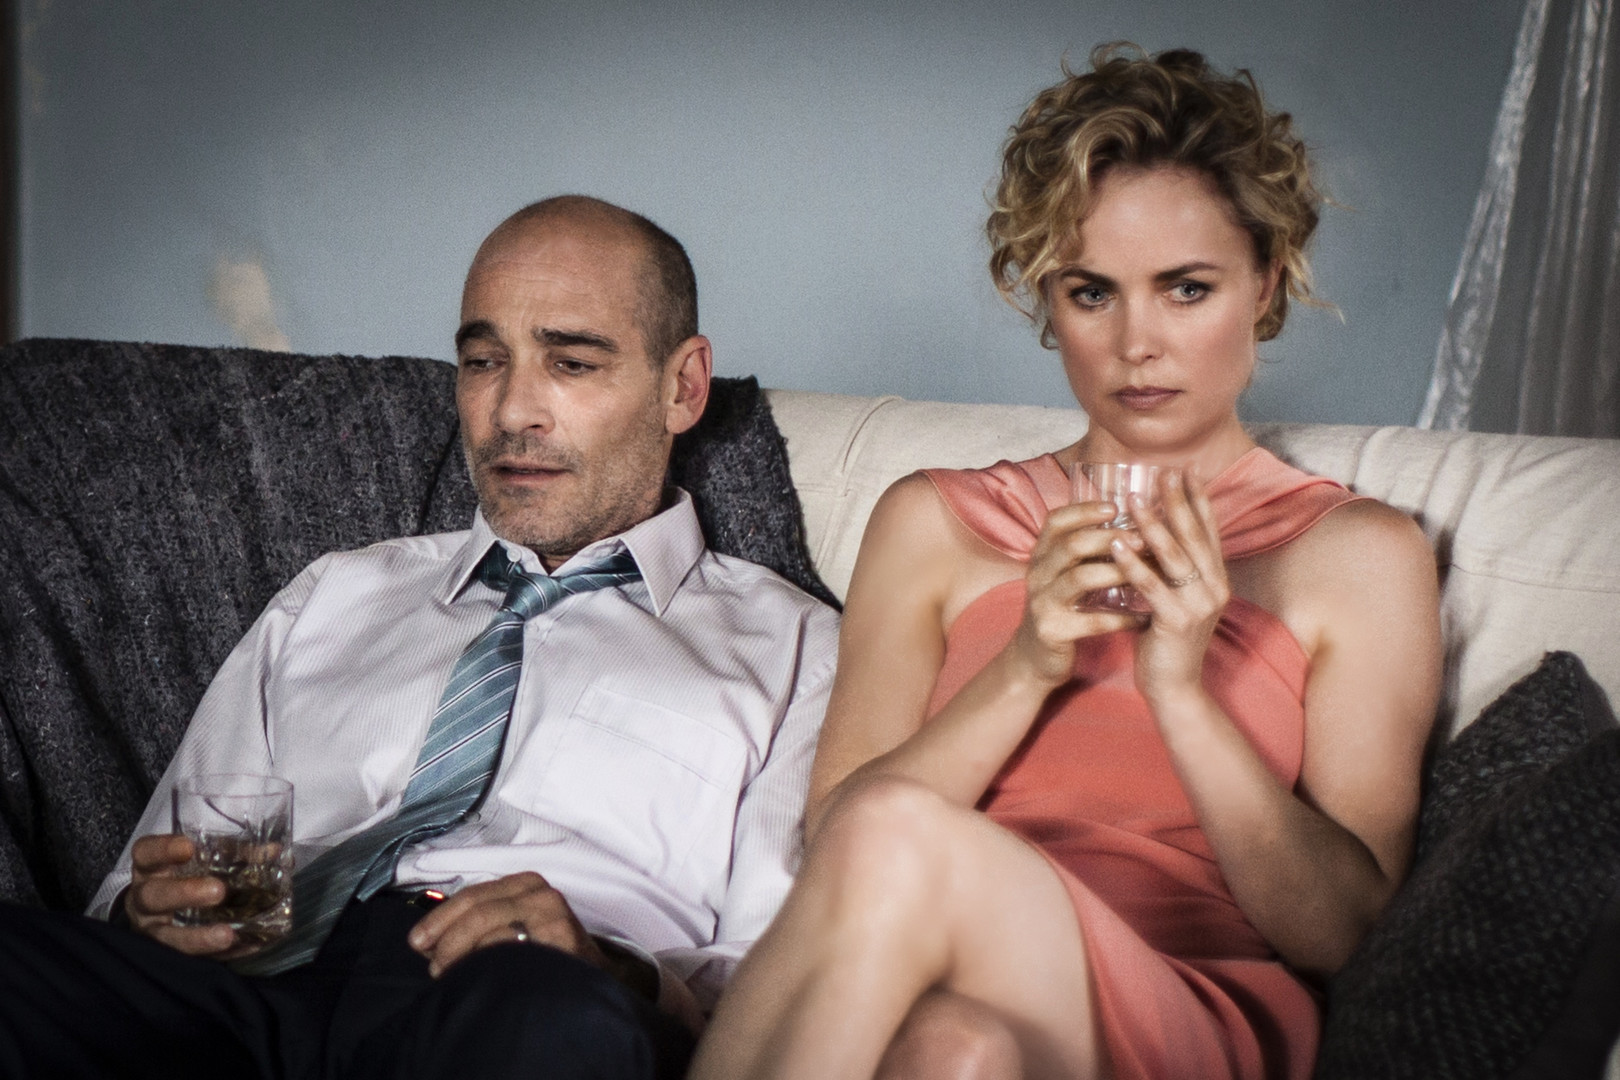 Ray_Jean-Marc_Barr__Iris_Radha_Mitchell_on_the_couch_Photo_-_Mark_Rogers.jpg